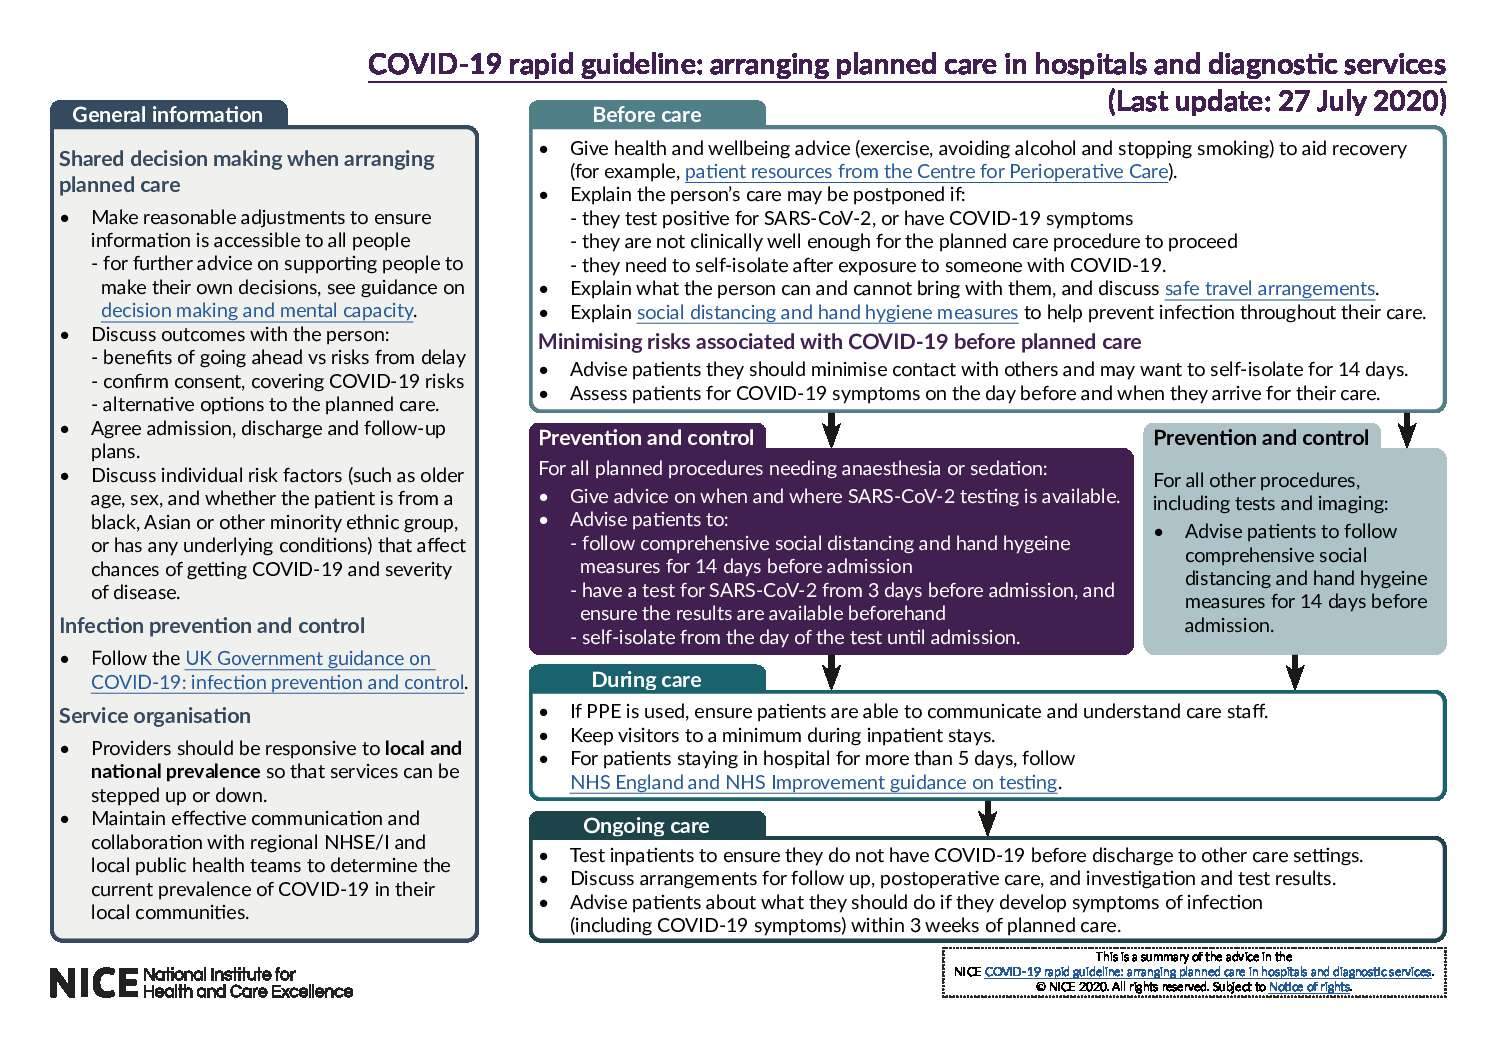 NICE release Covid-19 guidelines for Diagnostic services